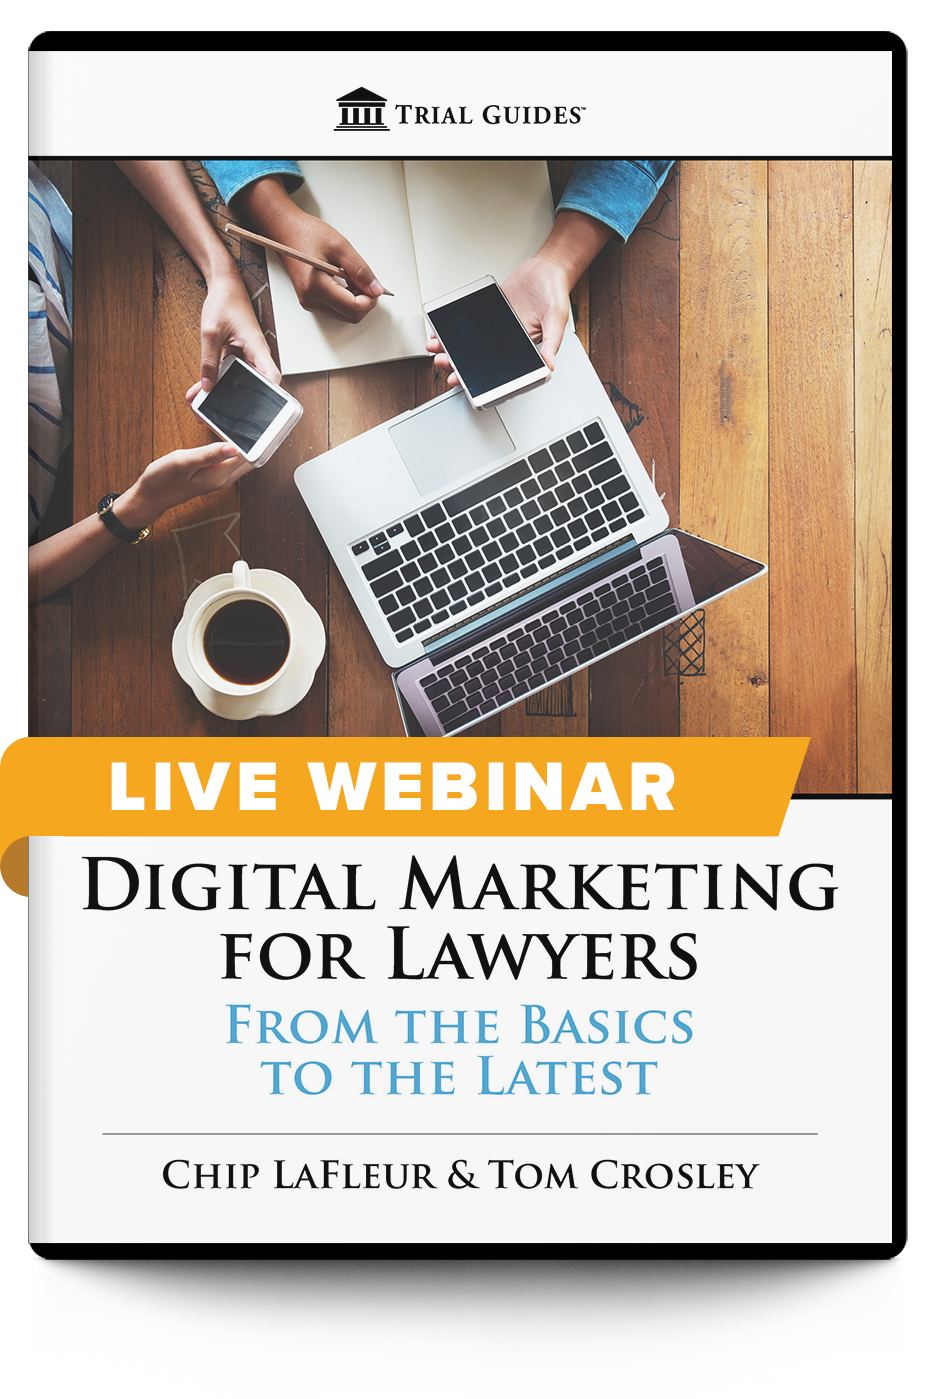 Digital Marketing for Lawyers: From the Basics to the Latest - Live Webinar